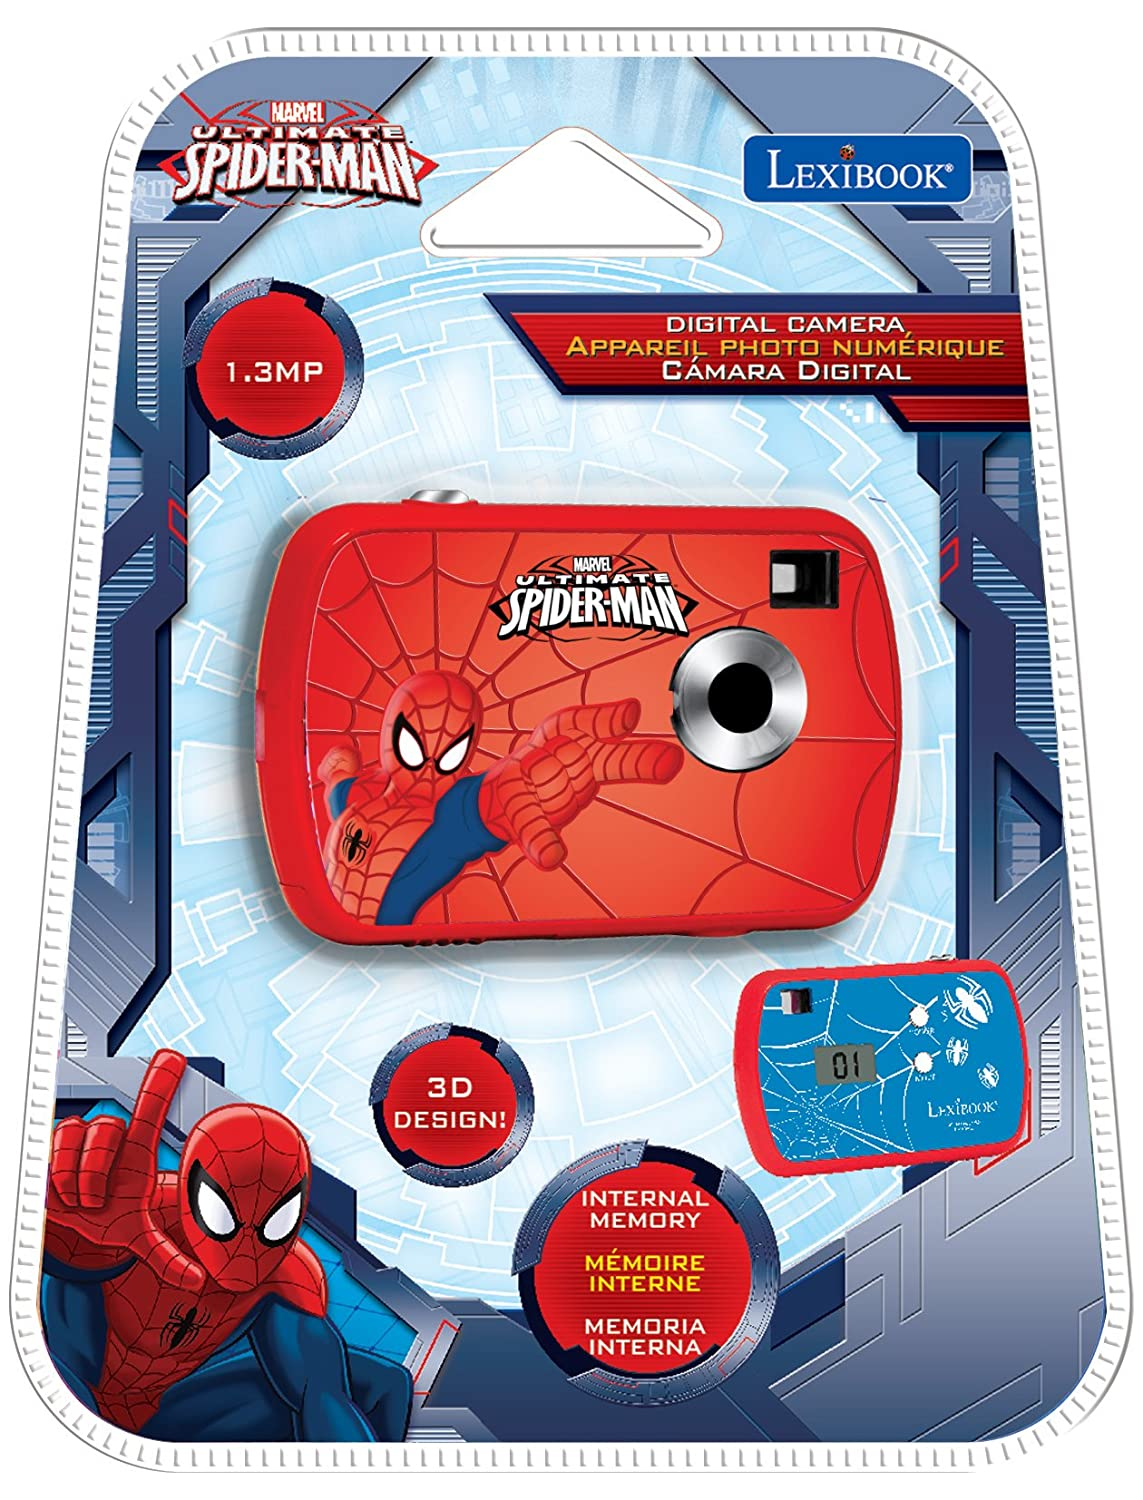 Amazon.es: Spider-Man - Cámara digital de 1.3 MP, color rojo / azul (Lexibook DJ018SP)